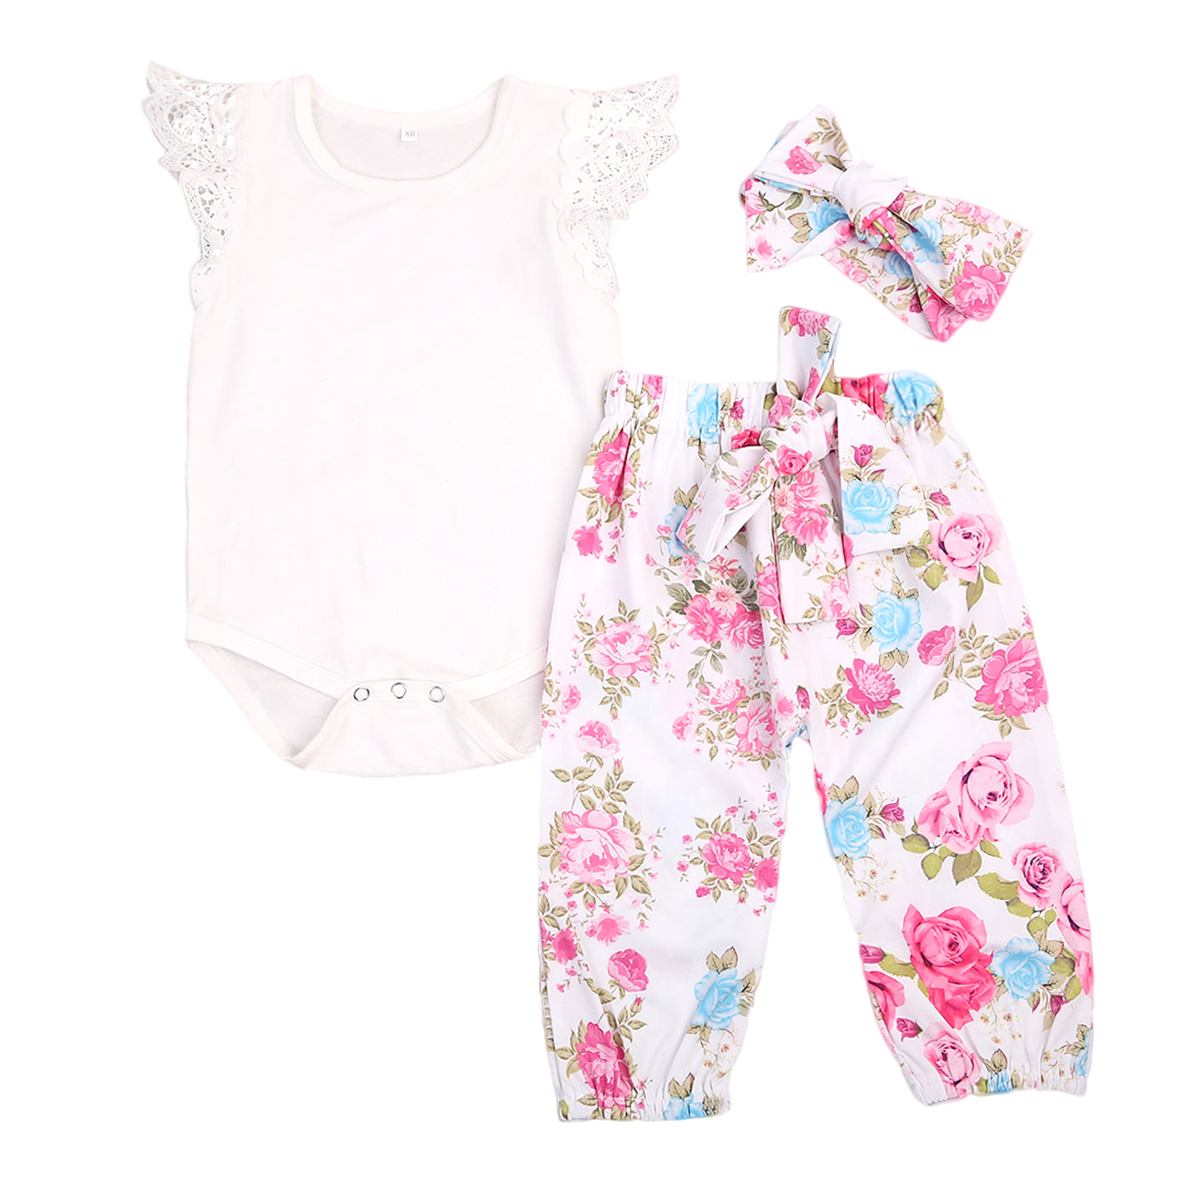 3PCS Set Newborn Baby Girl Clothing Set Lace Tops Bodysuits Short Sleeve Floral Pants Headband Outfit Clothes Baby Girls girls tops cute pants outfit clothes newborn kids baby girl clothing sets summer off shoulder striped short sleeve 1 6t